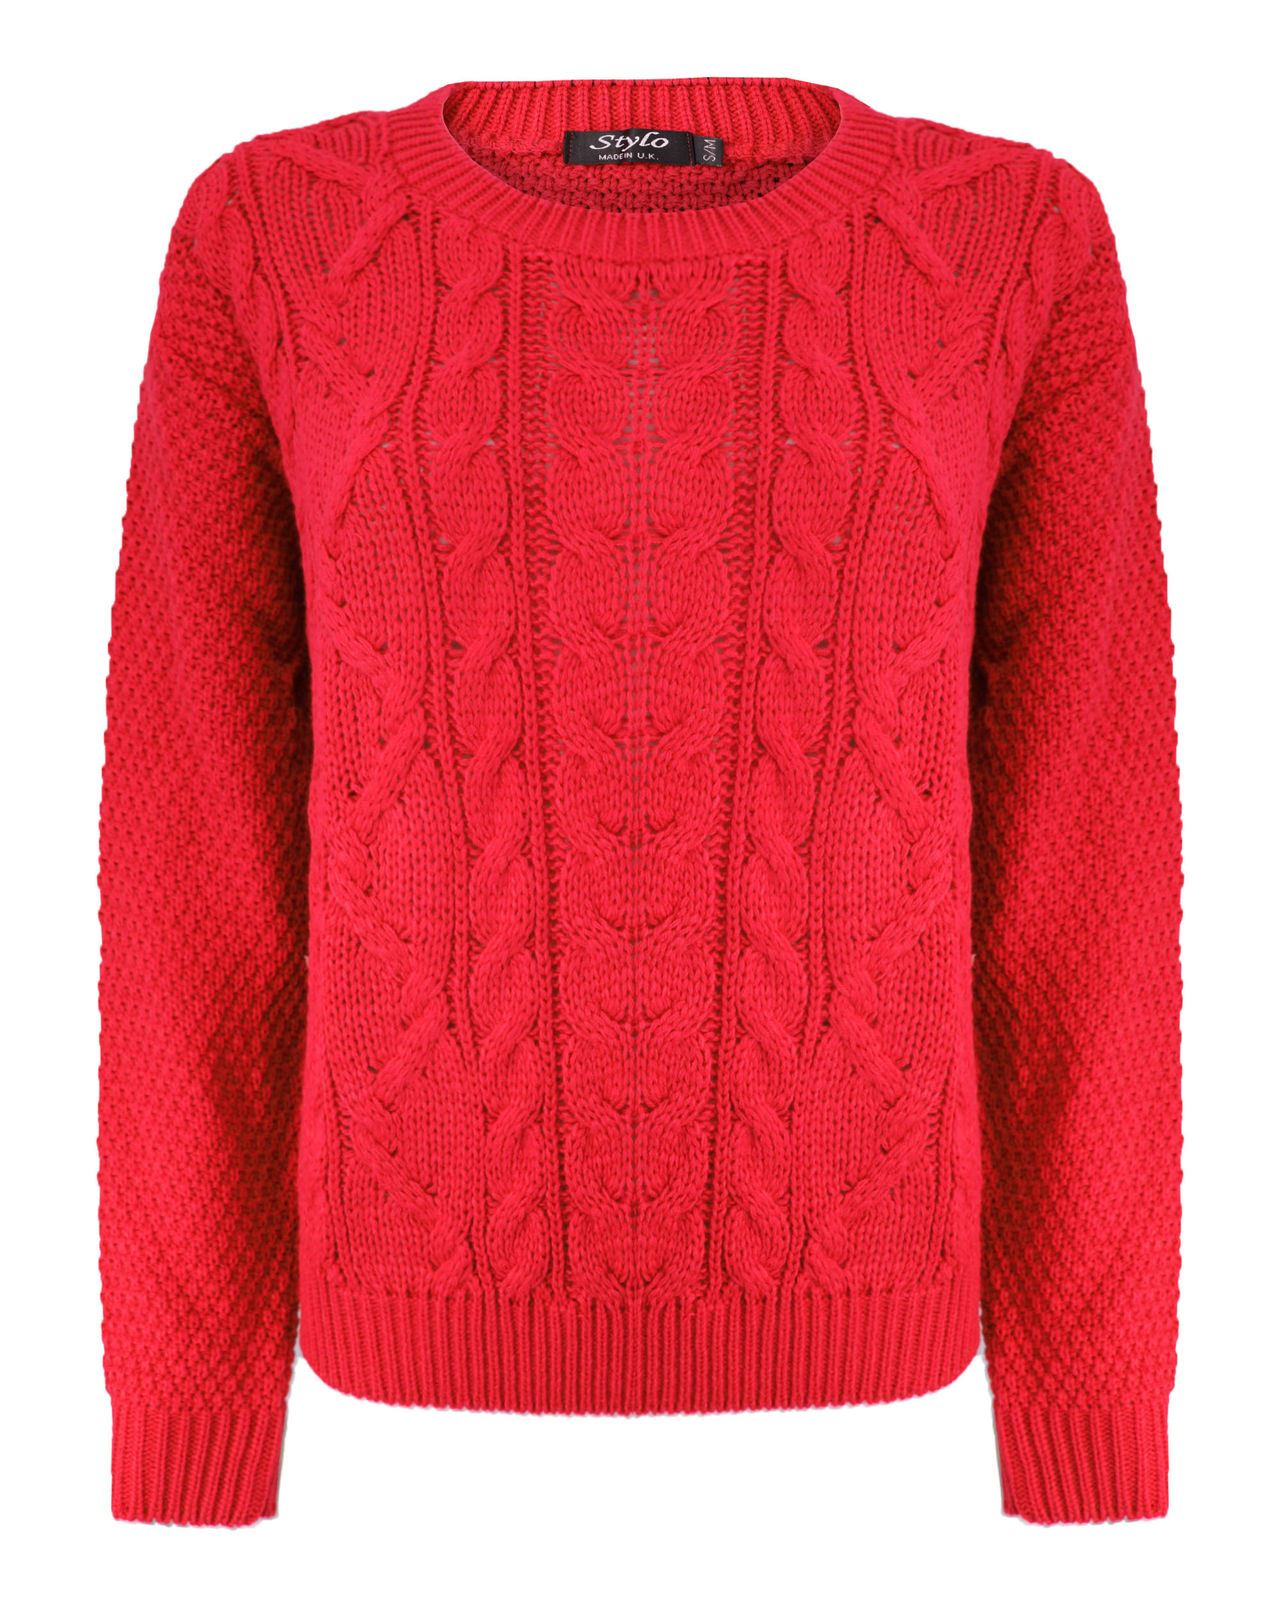 d1818266f Details about Ladies Women Cable Knit Long Sleeve Crew Neck Knitted Jumper  Baggy Sweater Top